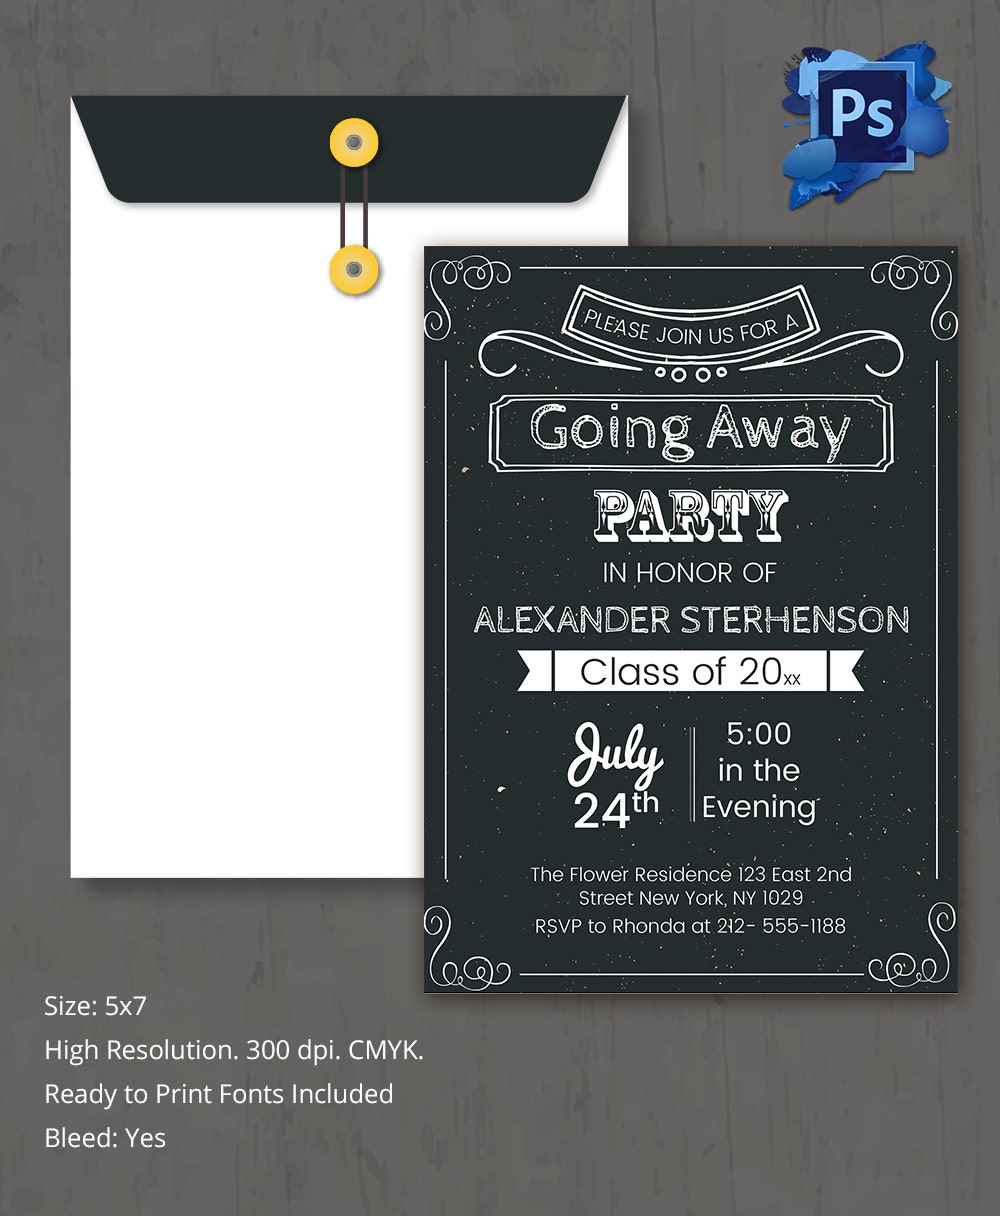 farewell party invitation template - nicetobeatyou.tk